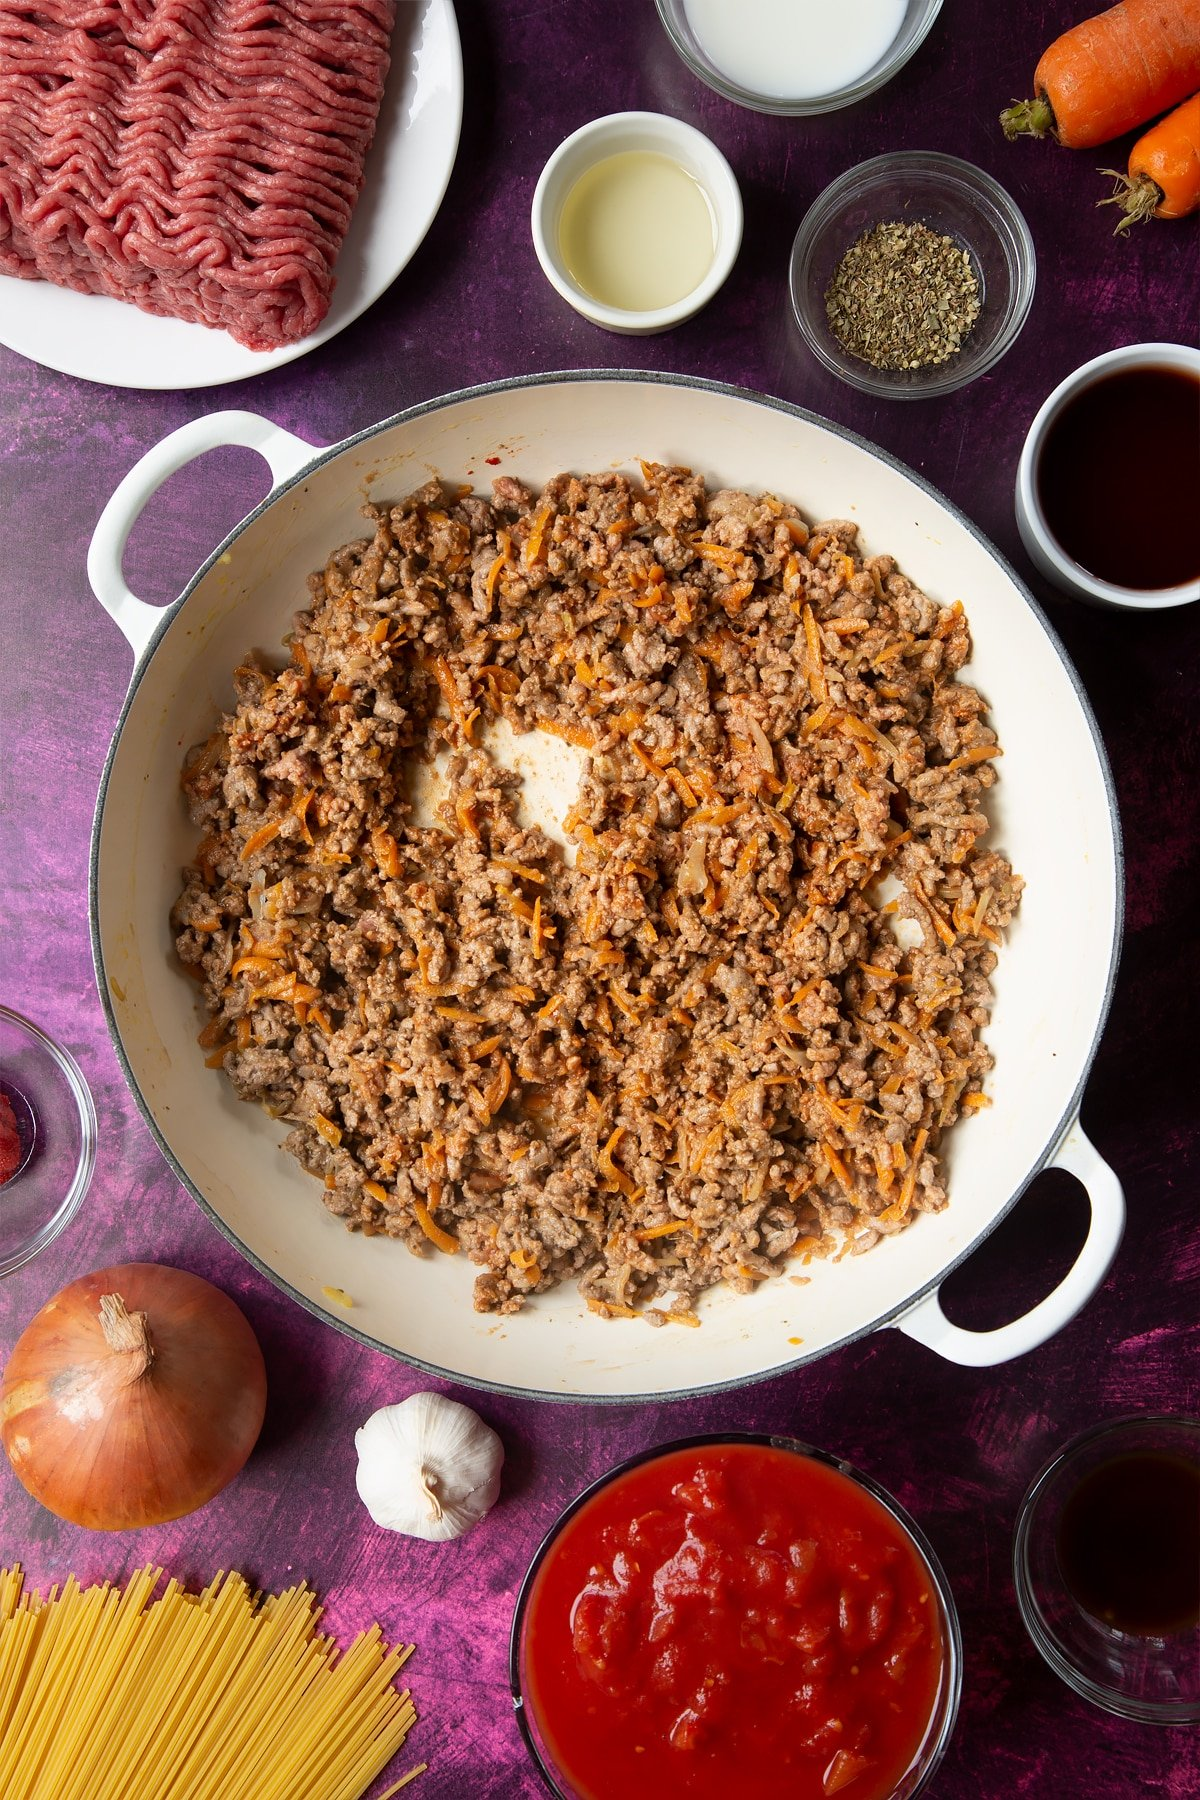 A large frying pan with fried carrot, onion, garlic, dried oregano, lean beef mince and tomato puree. Ingredients to make spaghetti bolognese Gordon Ramsay style surround the pan.